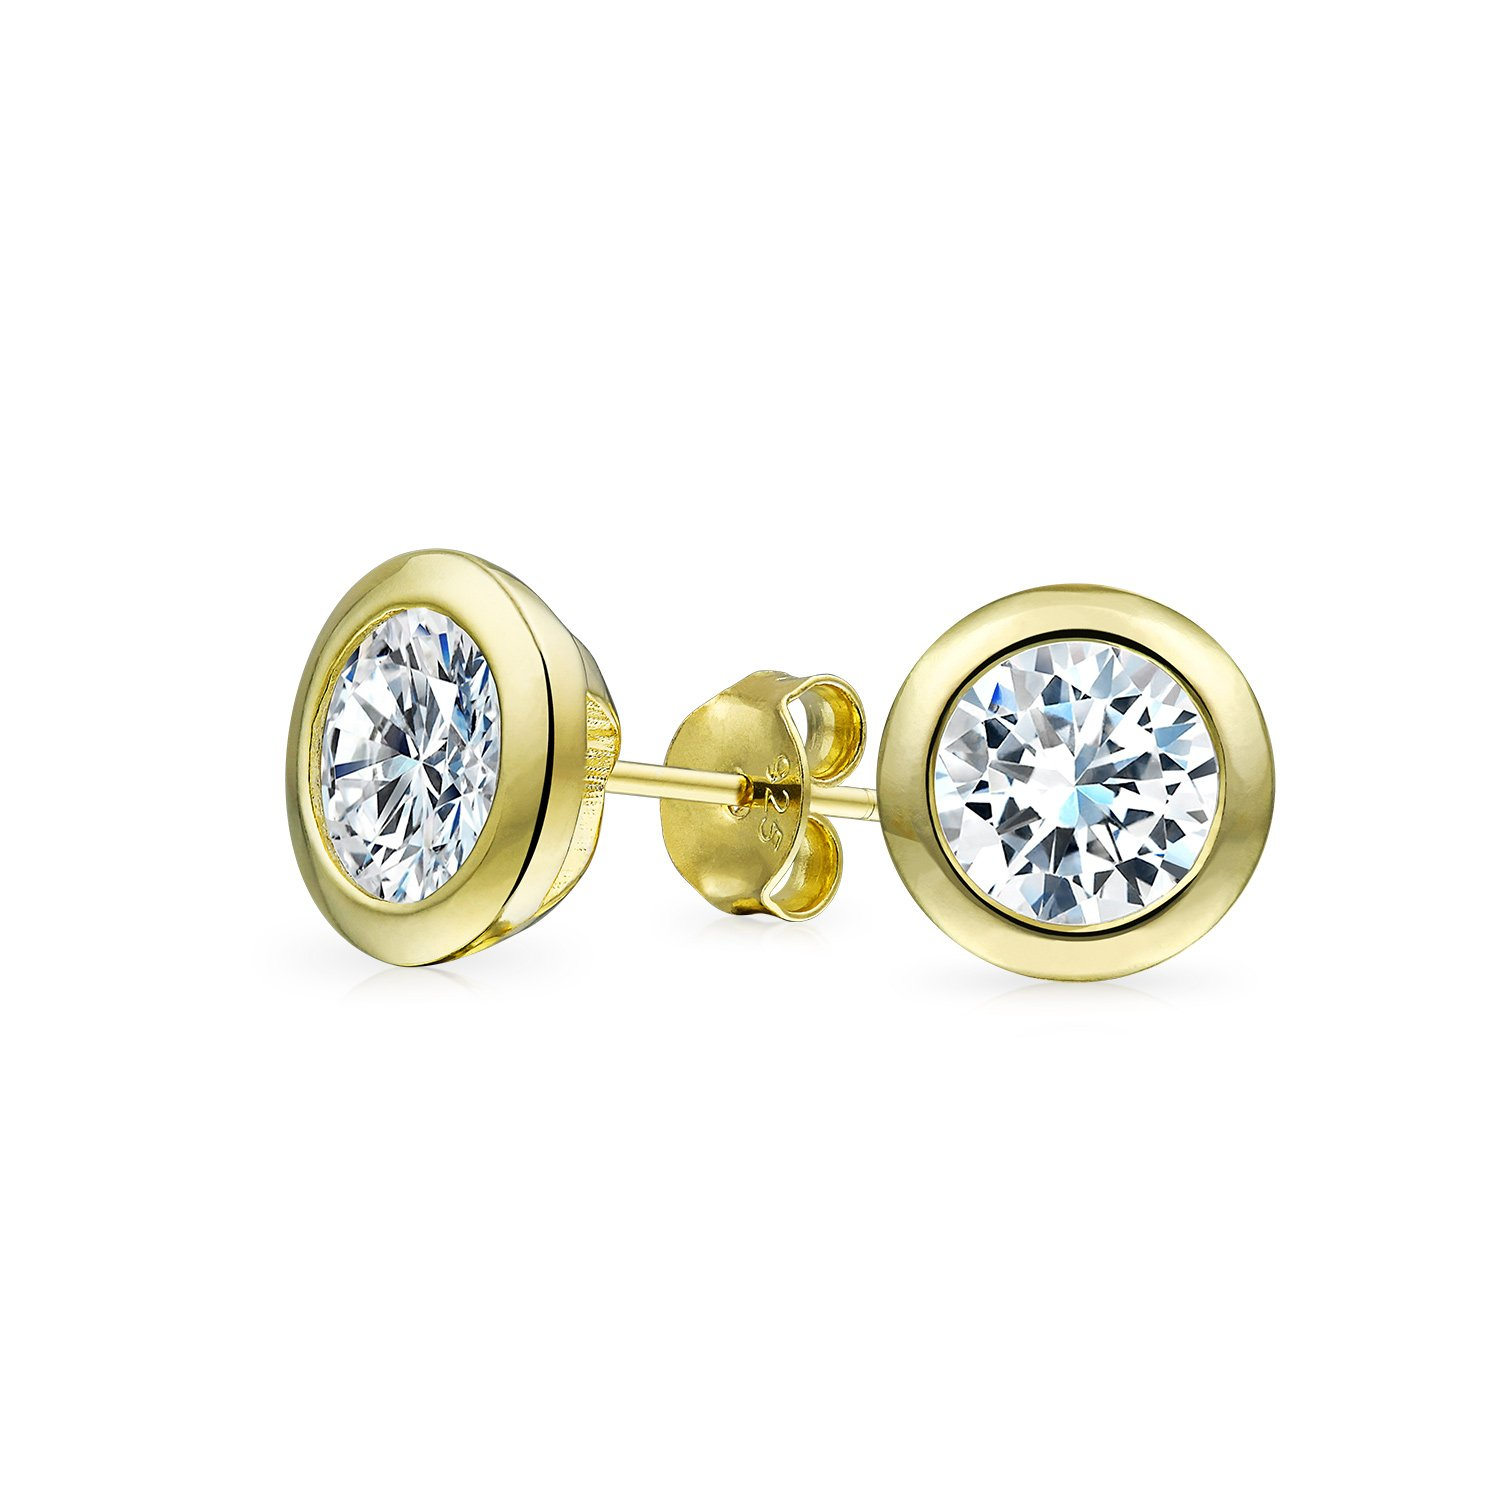 Simulated Diamond 14K Gold Plated 925 Sterling Silver Yellow White or Rose Gold Hypoallergenic 4mm Round Cut AAA Solitaire Cubic Zirconia Leverback Earrings